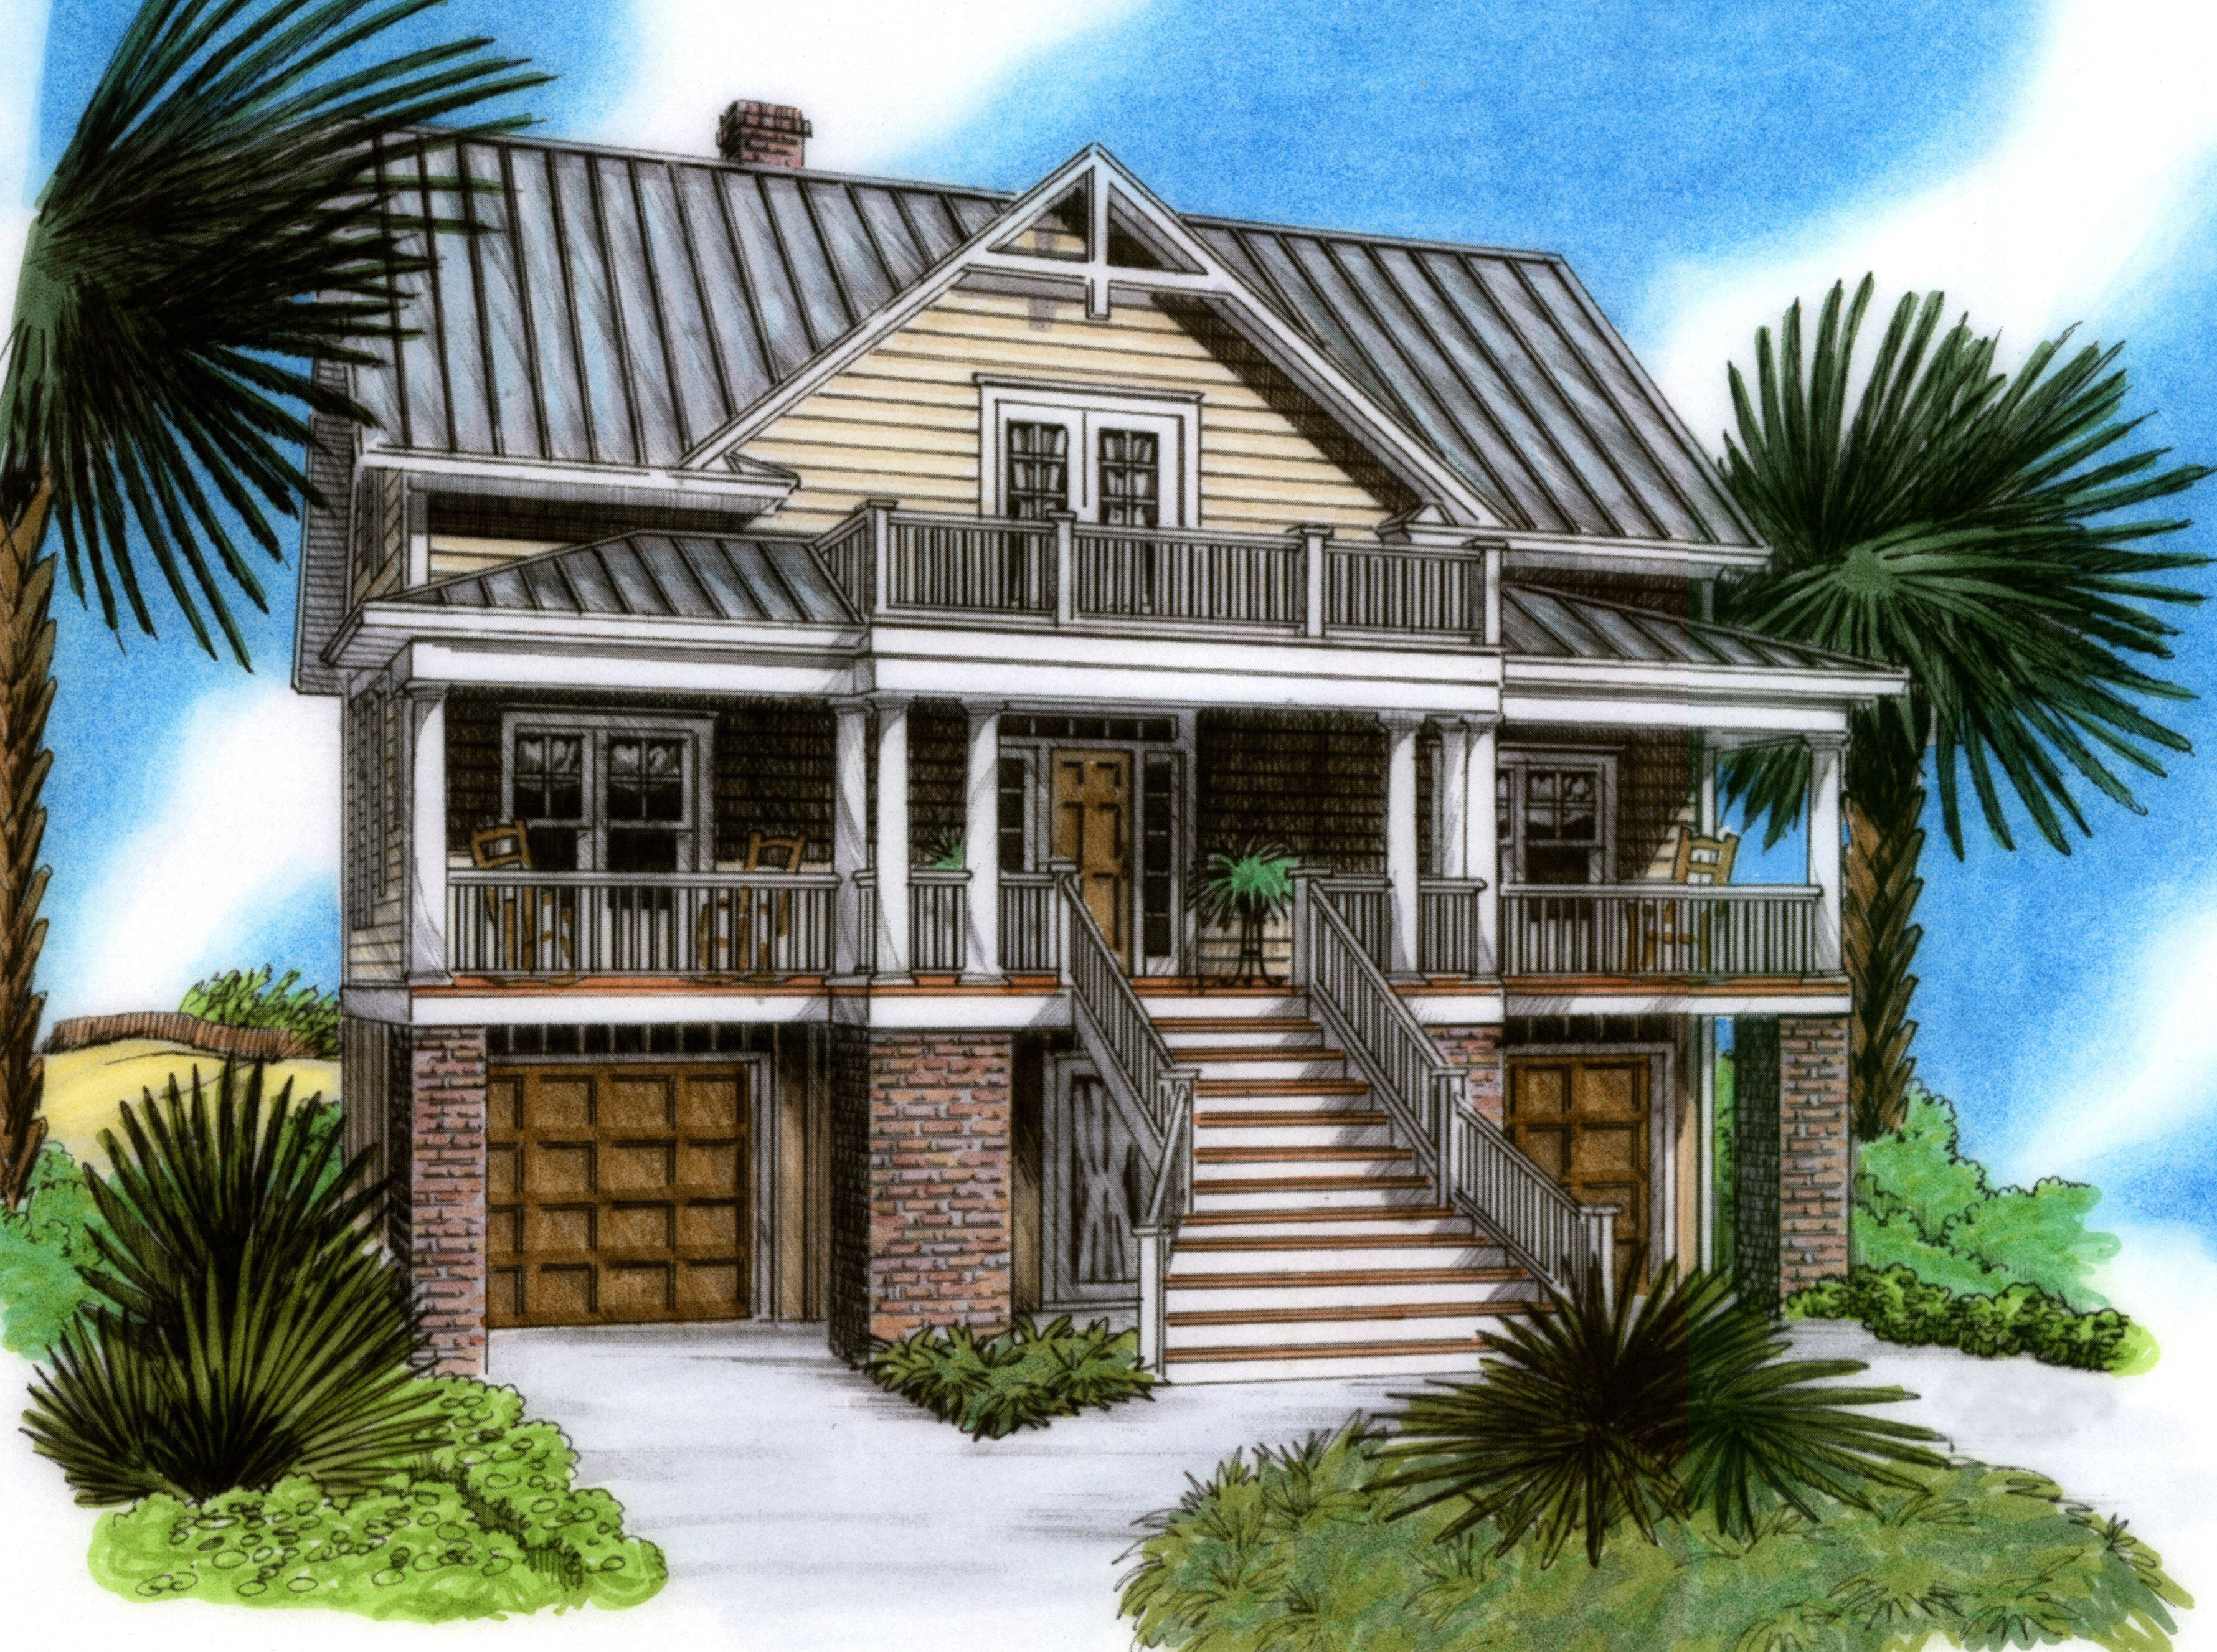 Plan 15019nc raised beach house delight raising country and beach - Summer house plans delight relaxation ...